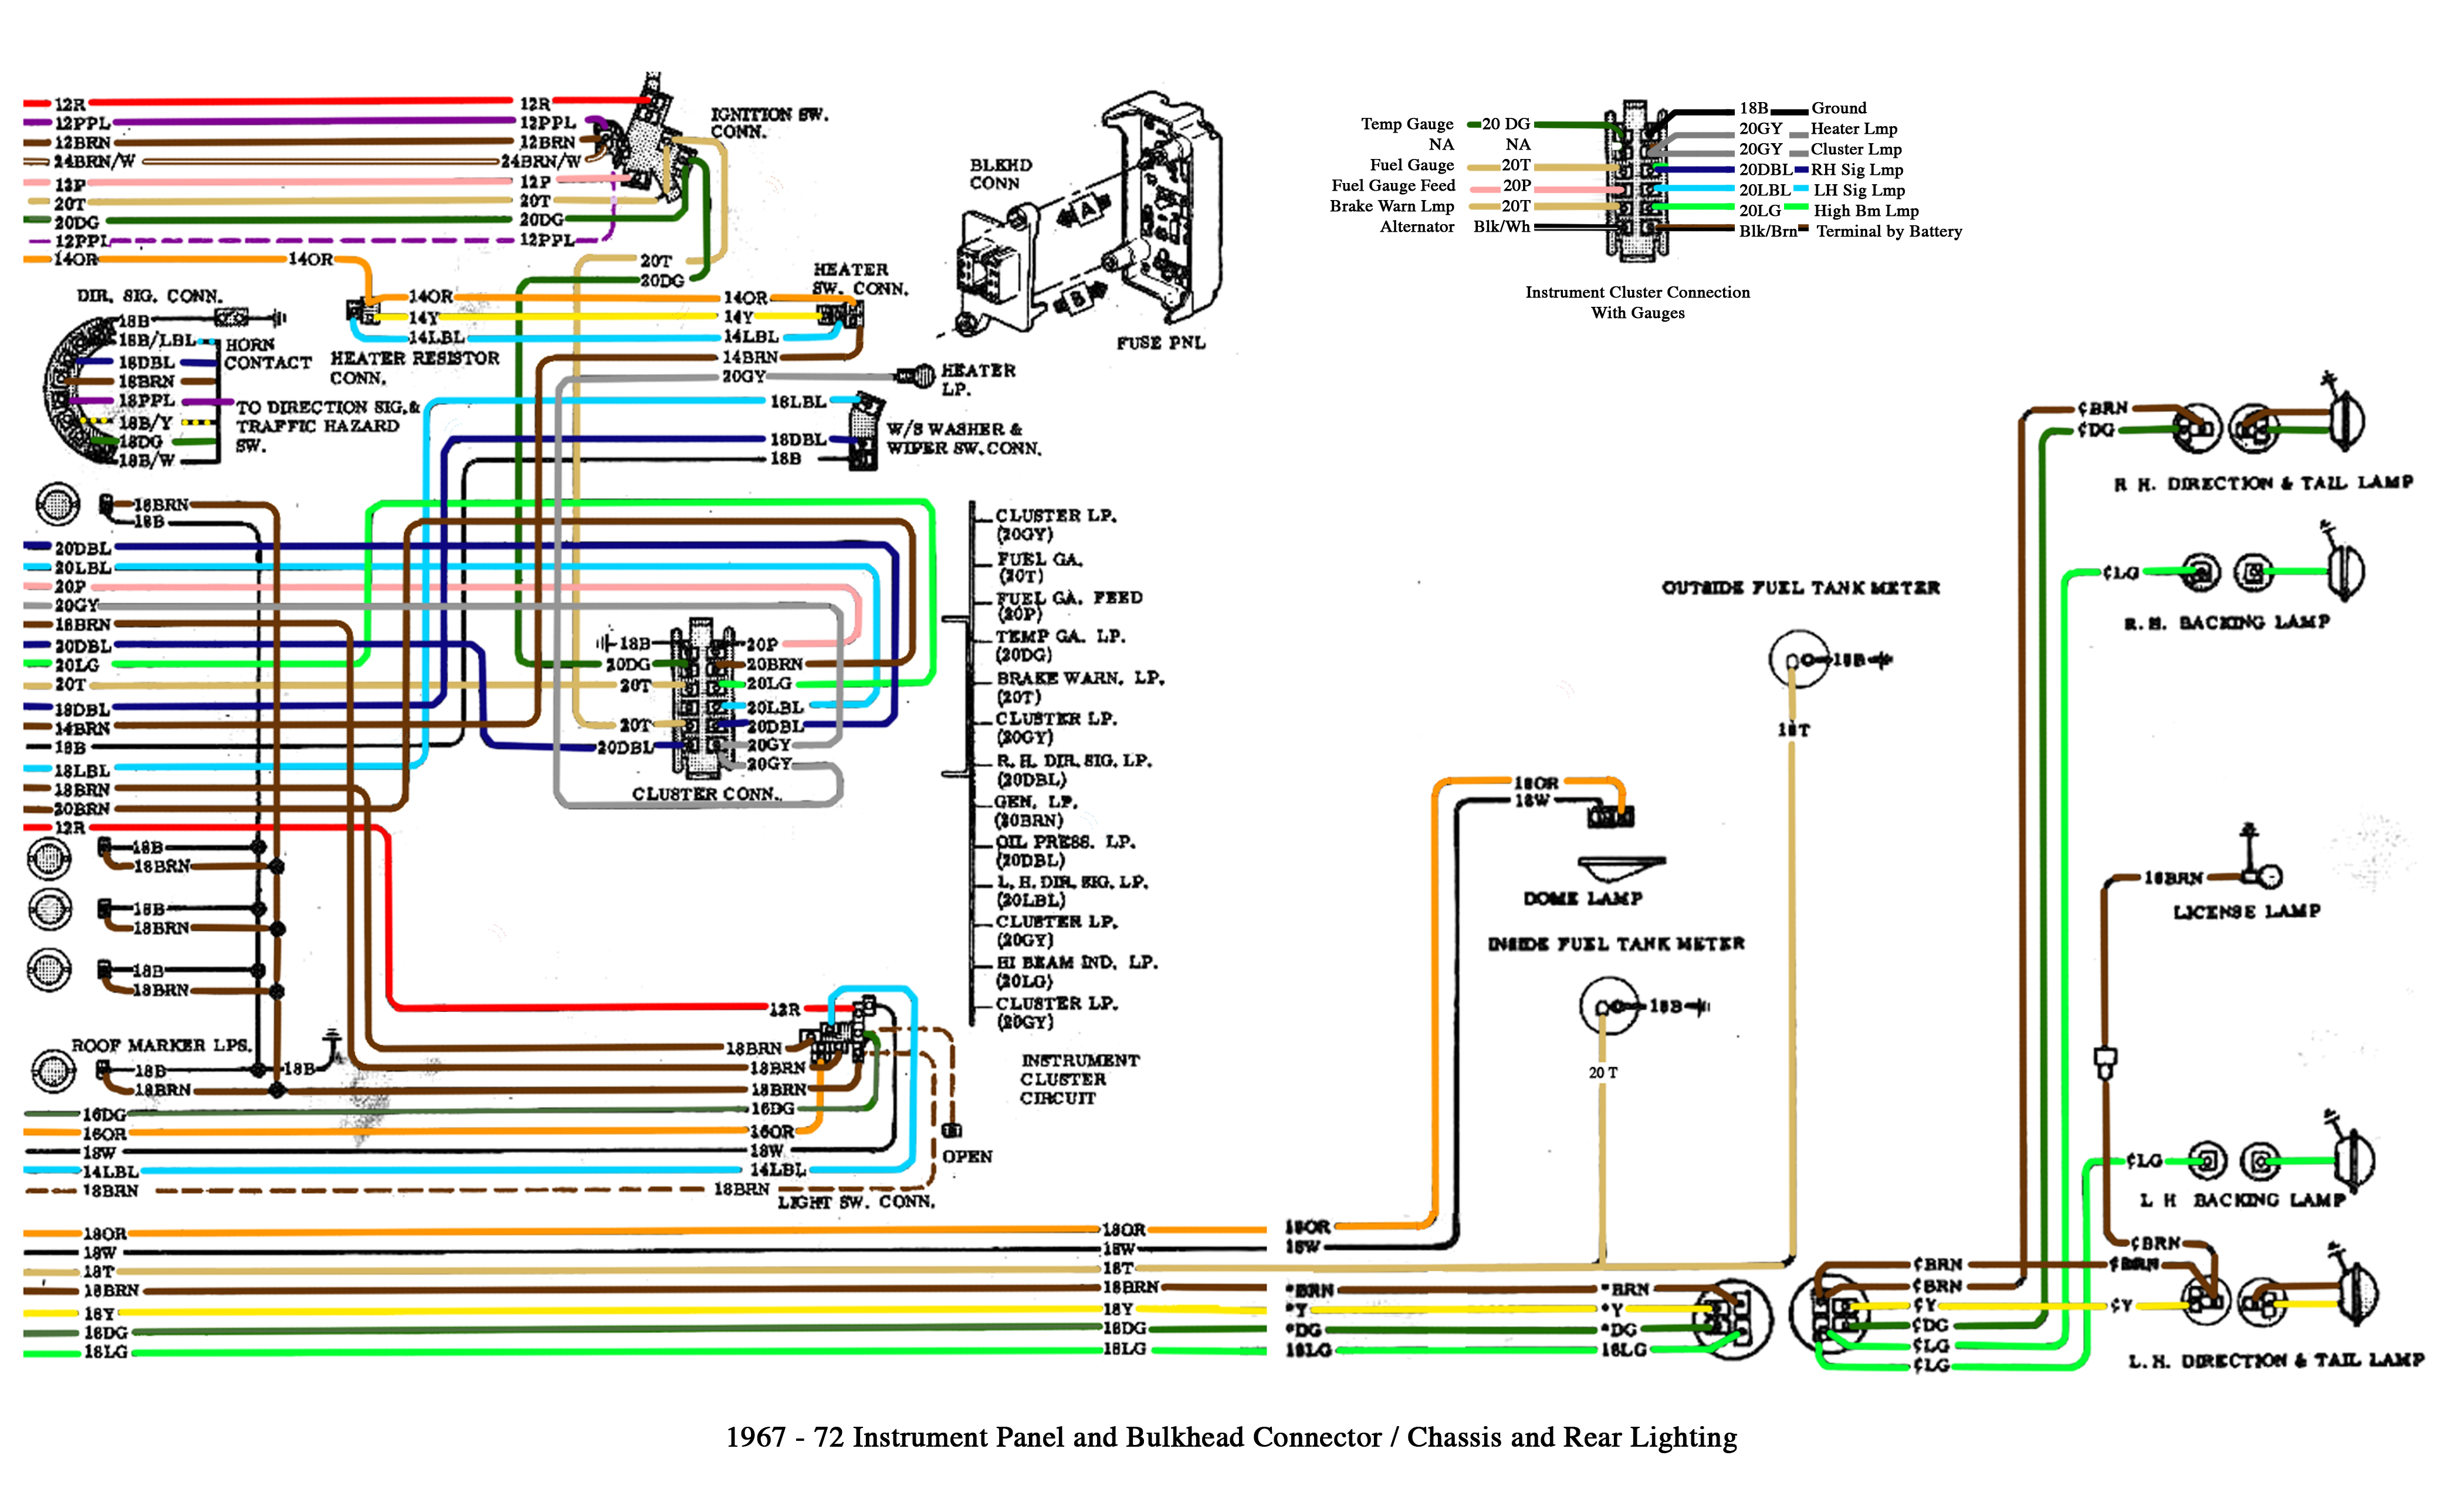 Fe O D on 1998 Dodge Ram Radio Wiring Diagram